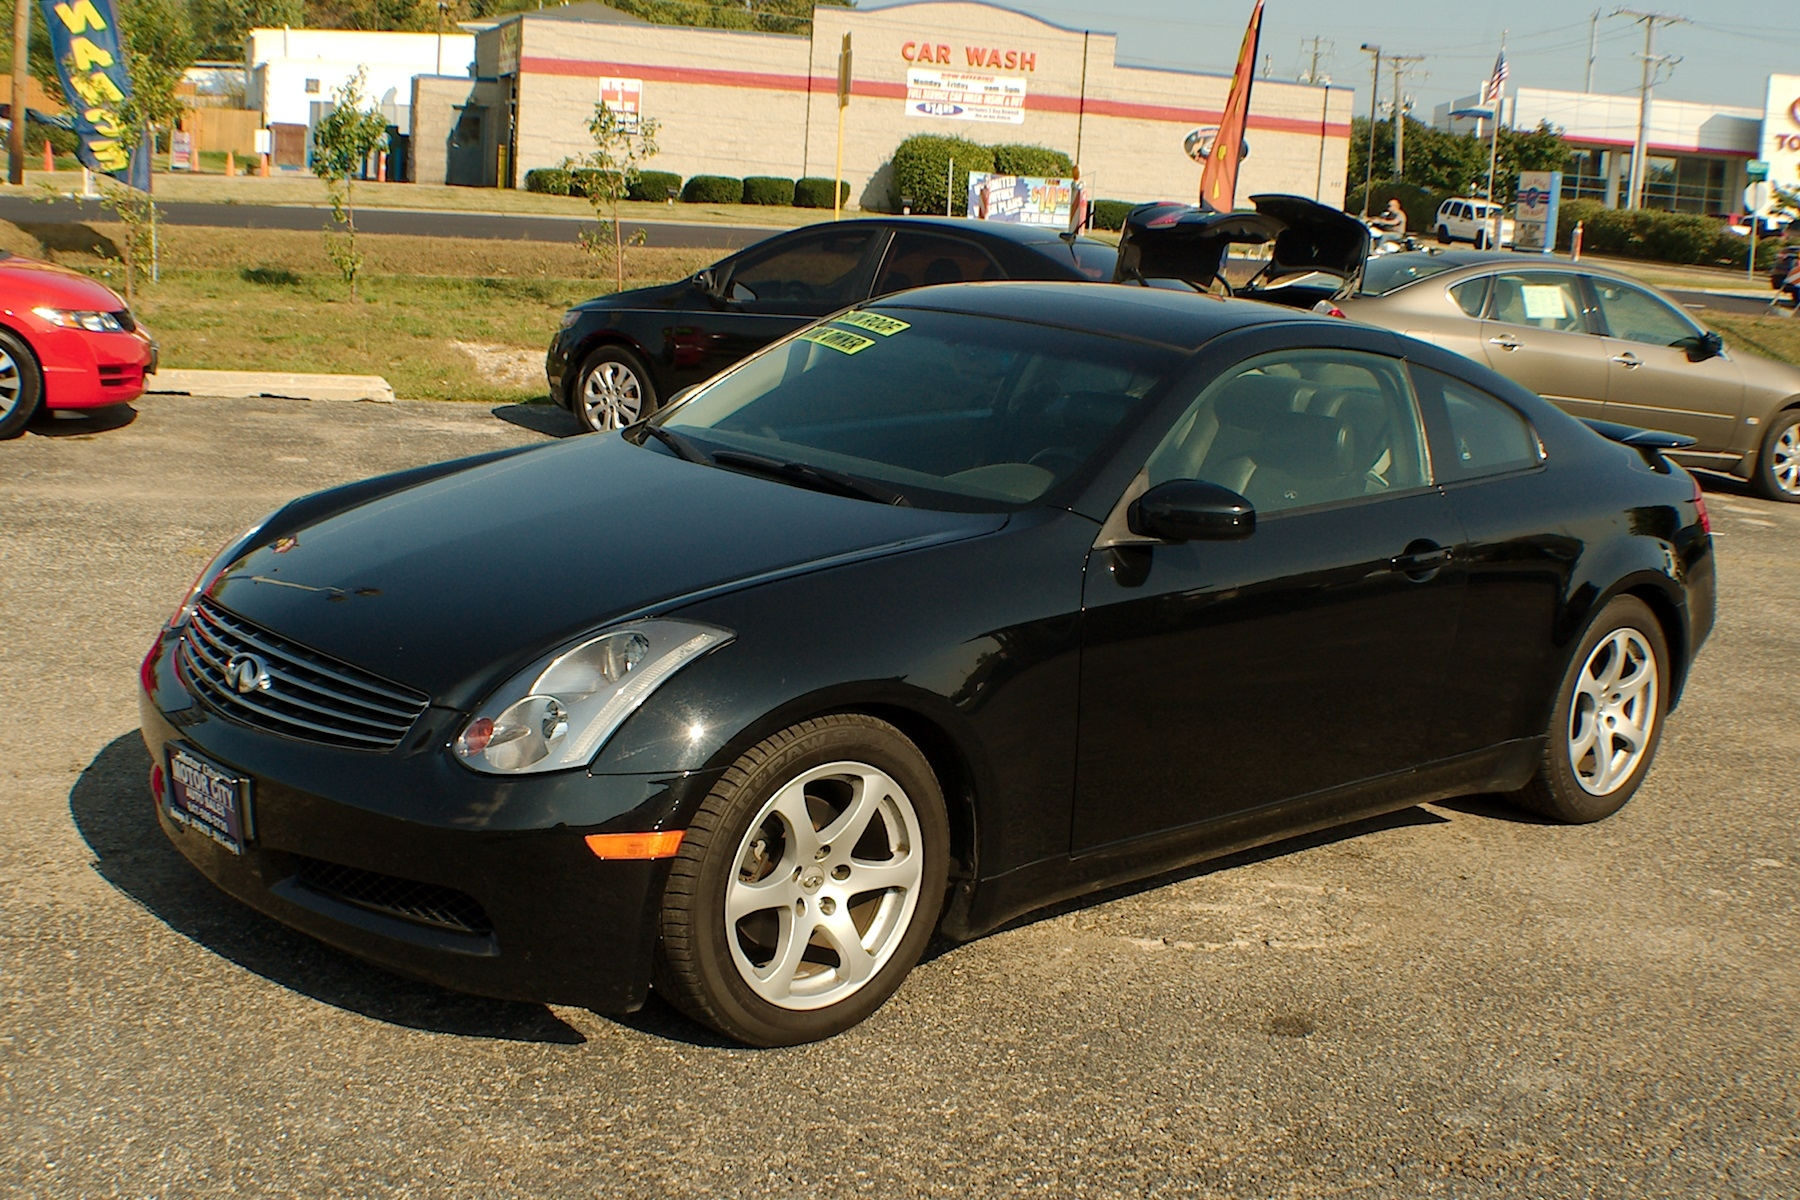 2003 Infiniti G35 Black Sport Coupe used car Sale Antioch Zion Waukegan Lake County Illinois